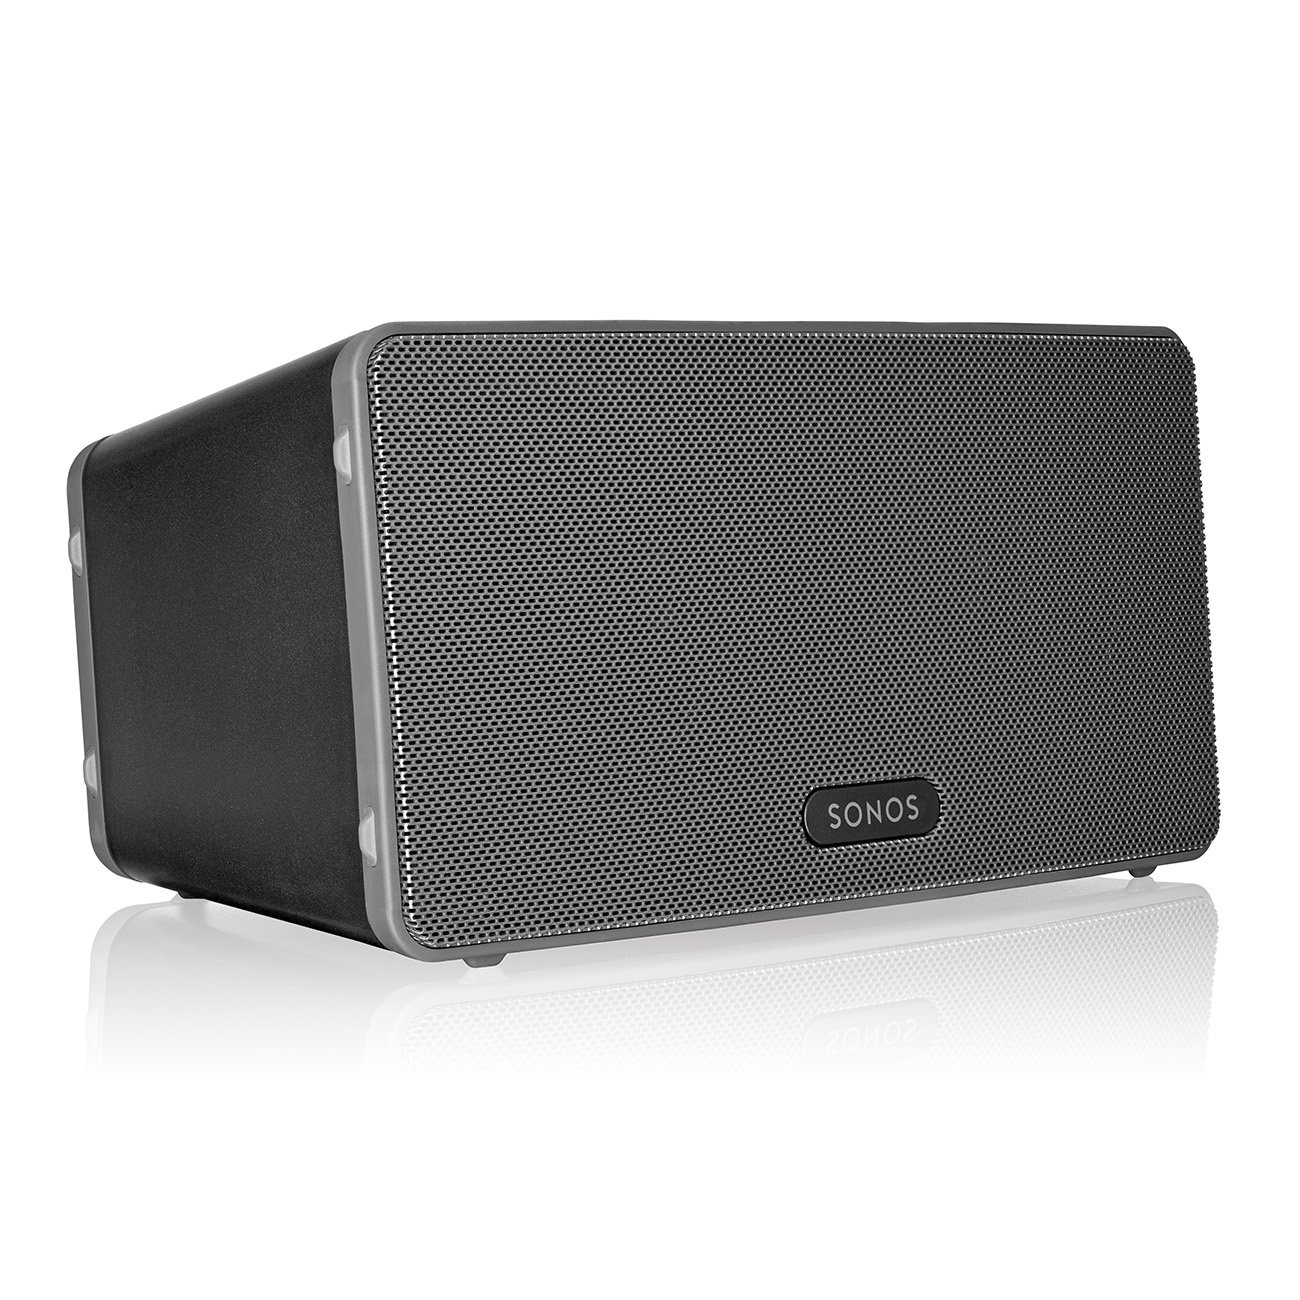 Sonos PLAY:3 Mid-Sized Wireless Smart Speaker for Streaming Music. Works with Alexa. (Black) by Sonos